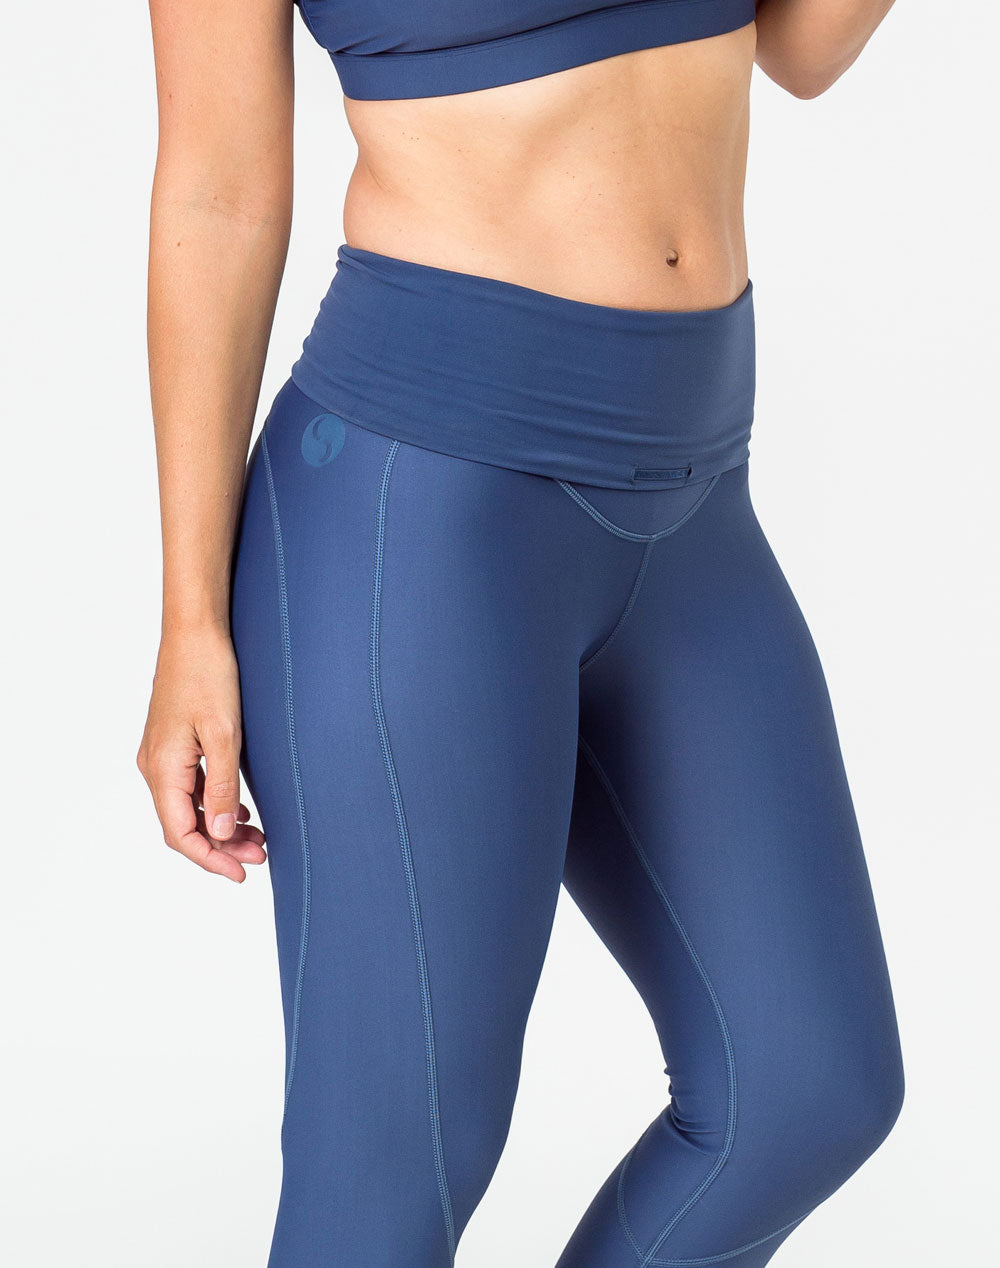 side on view of a mother wearing blue activewear maternity leggings with a belly band